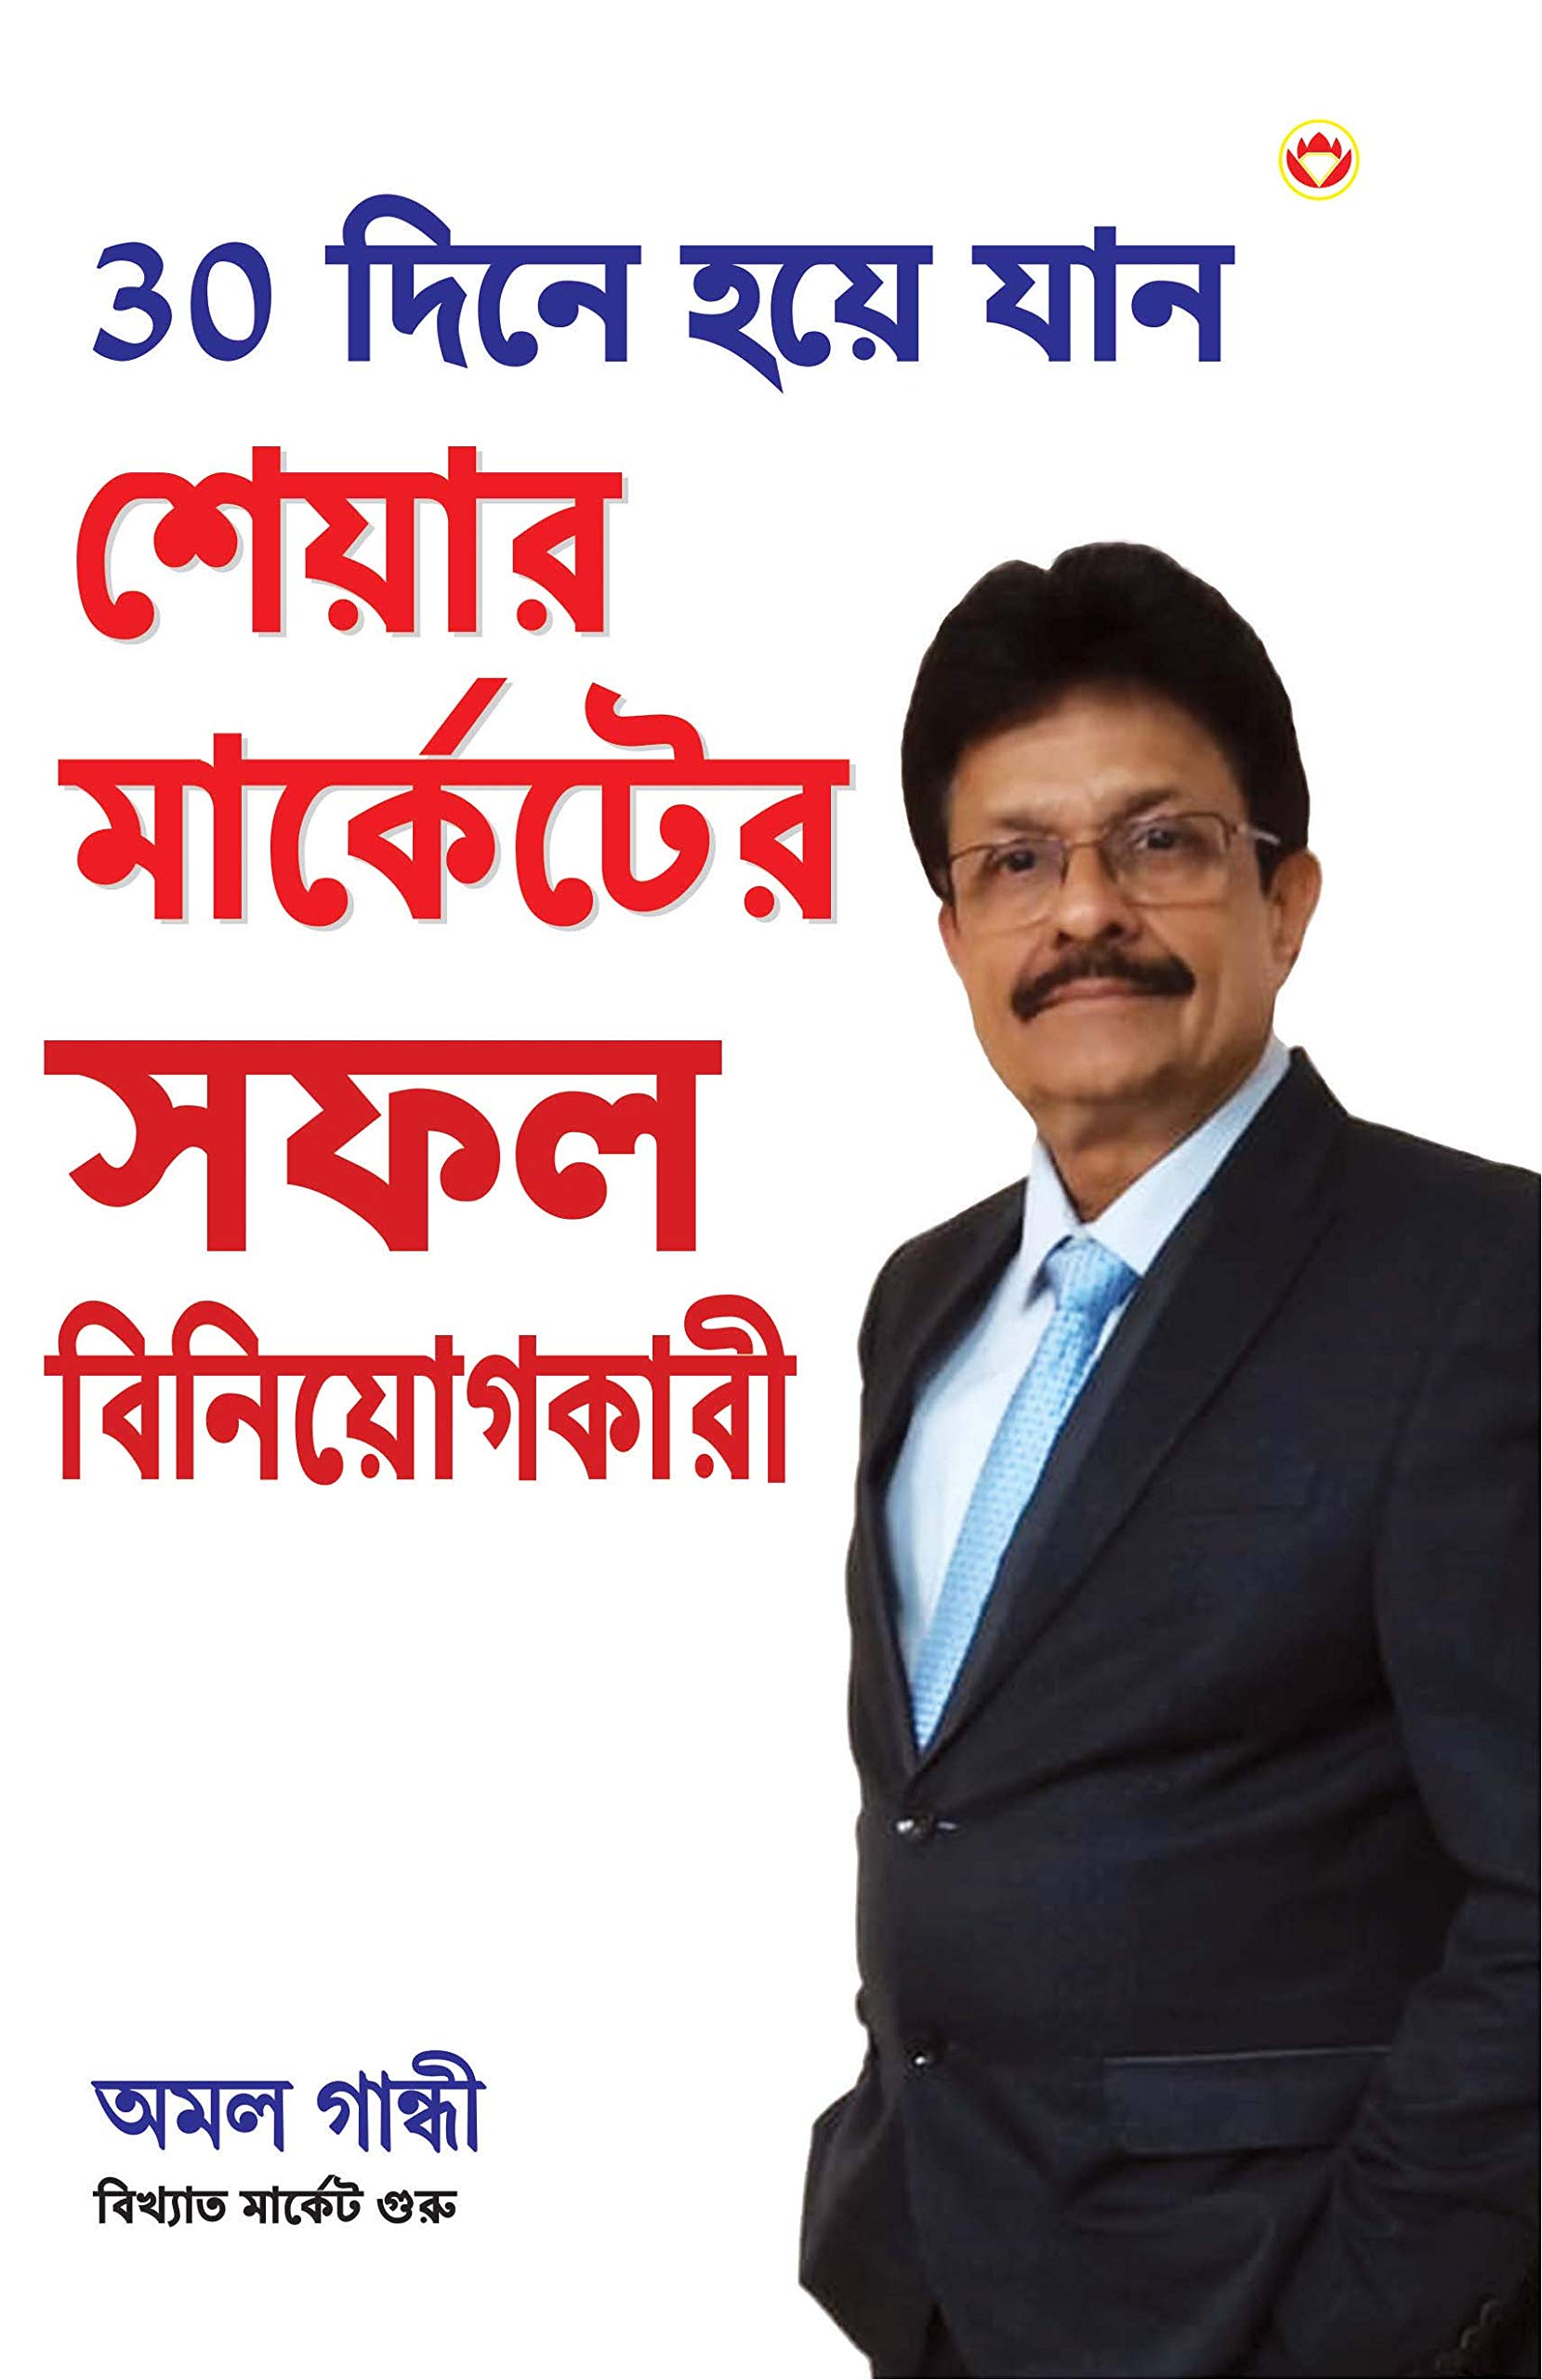 30 Din Mein Bane Share Market Mein Safal Niveshak (Bangla) (Become a Successful Investor in Share Market in 30 Days in Bengali)